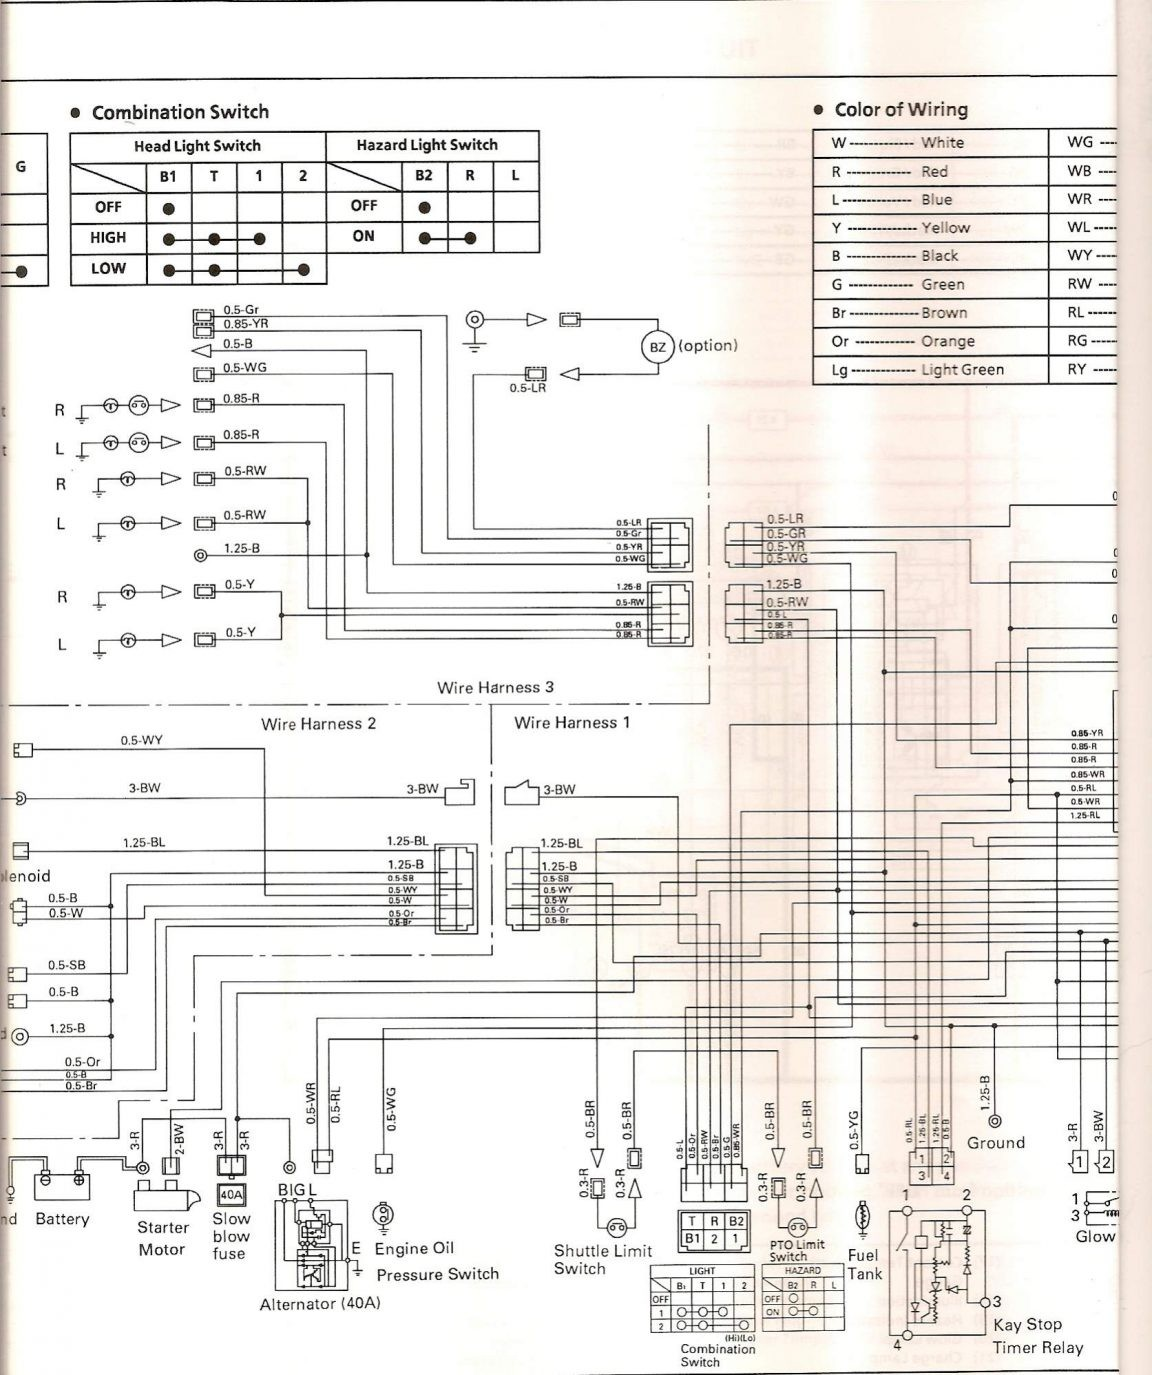 Fancy Iveco Daily Vi Steering Radio Diagram Motif - Wiring Diagram ...